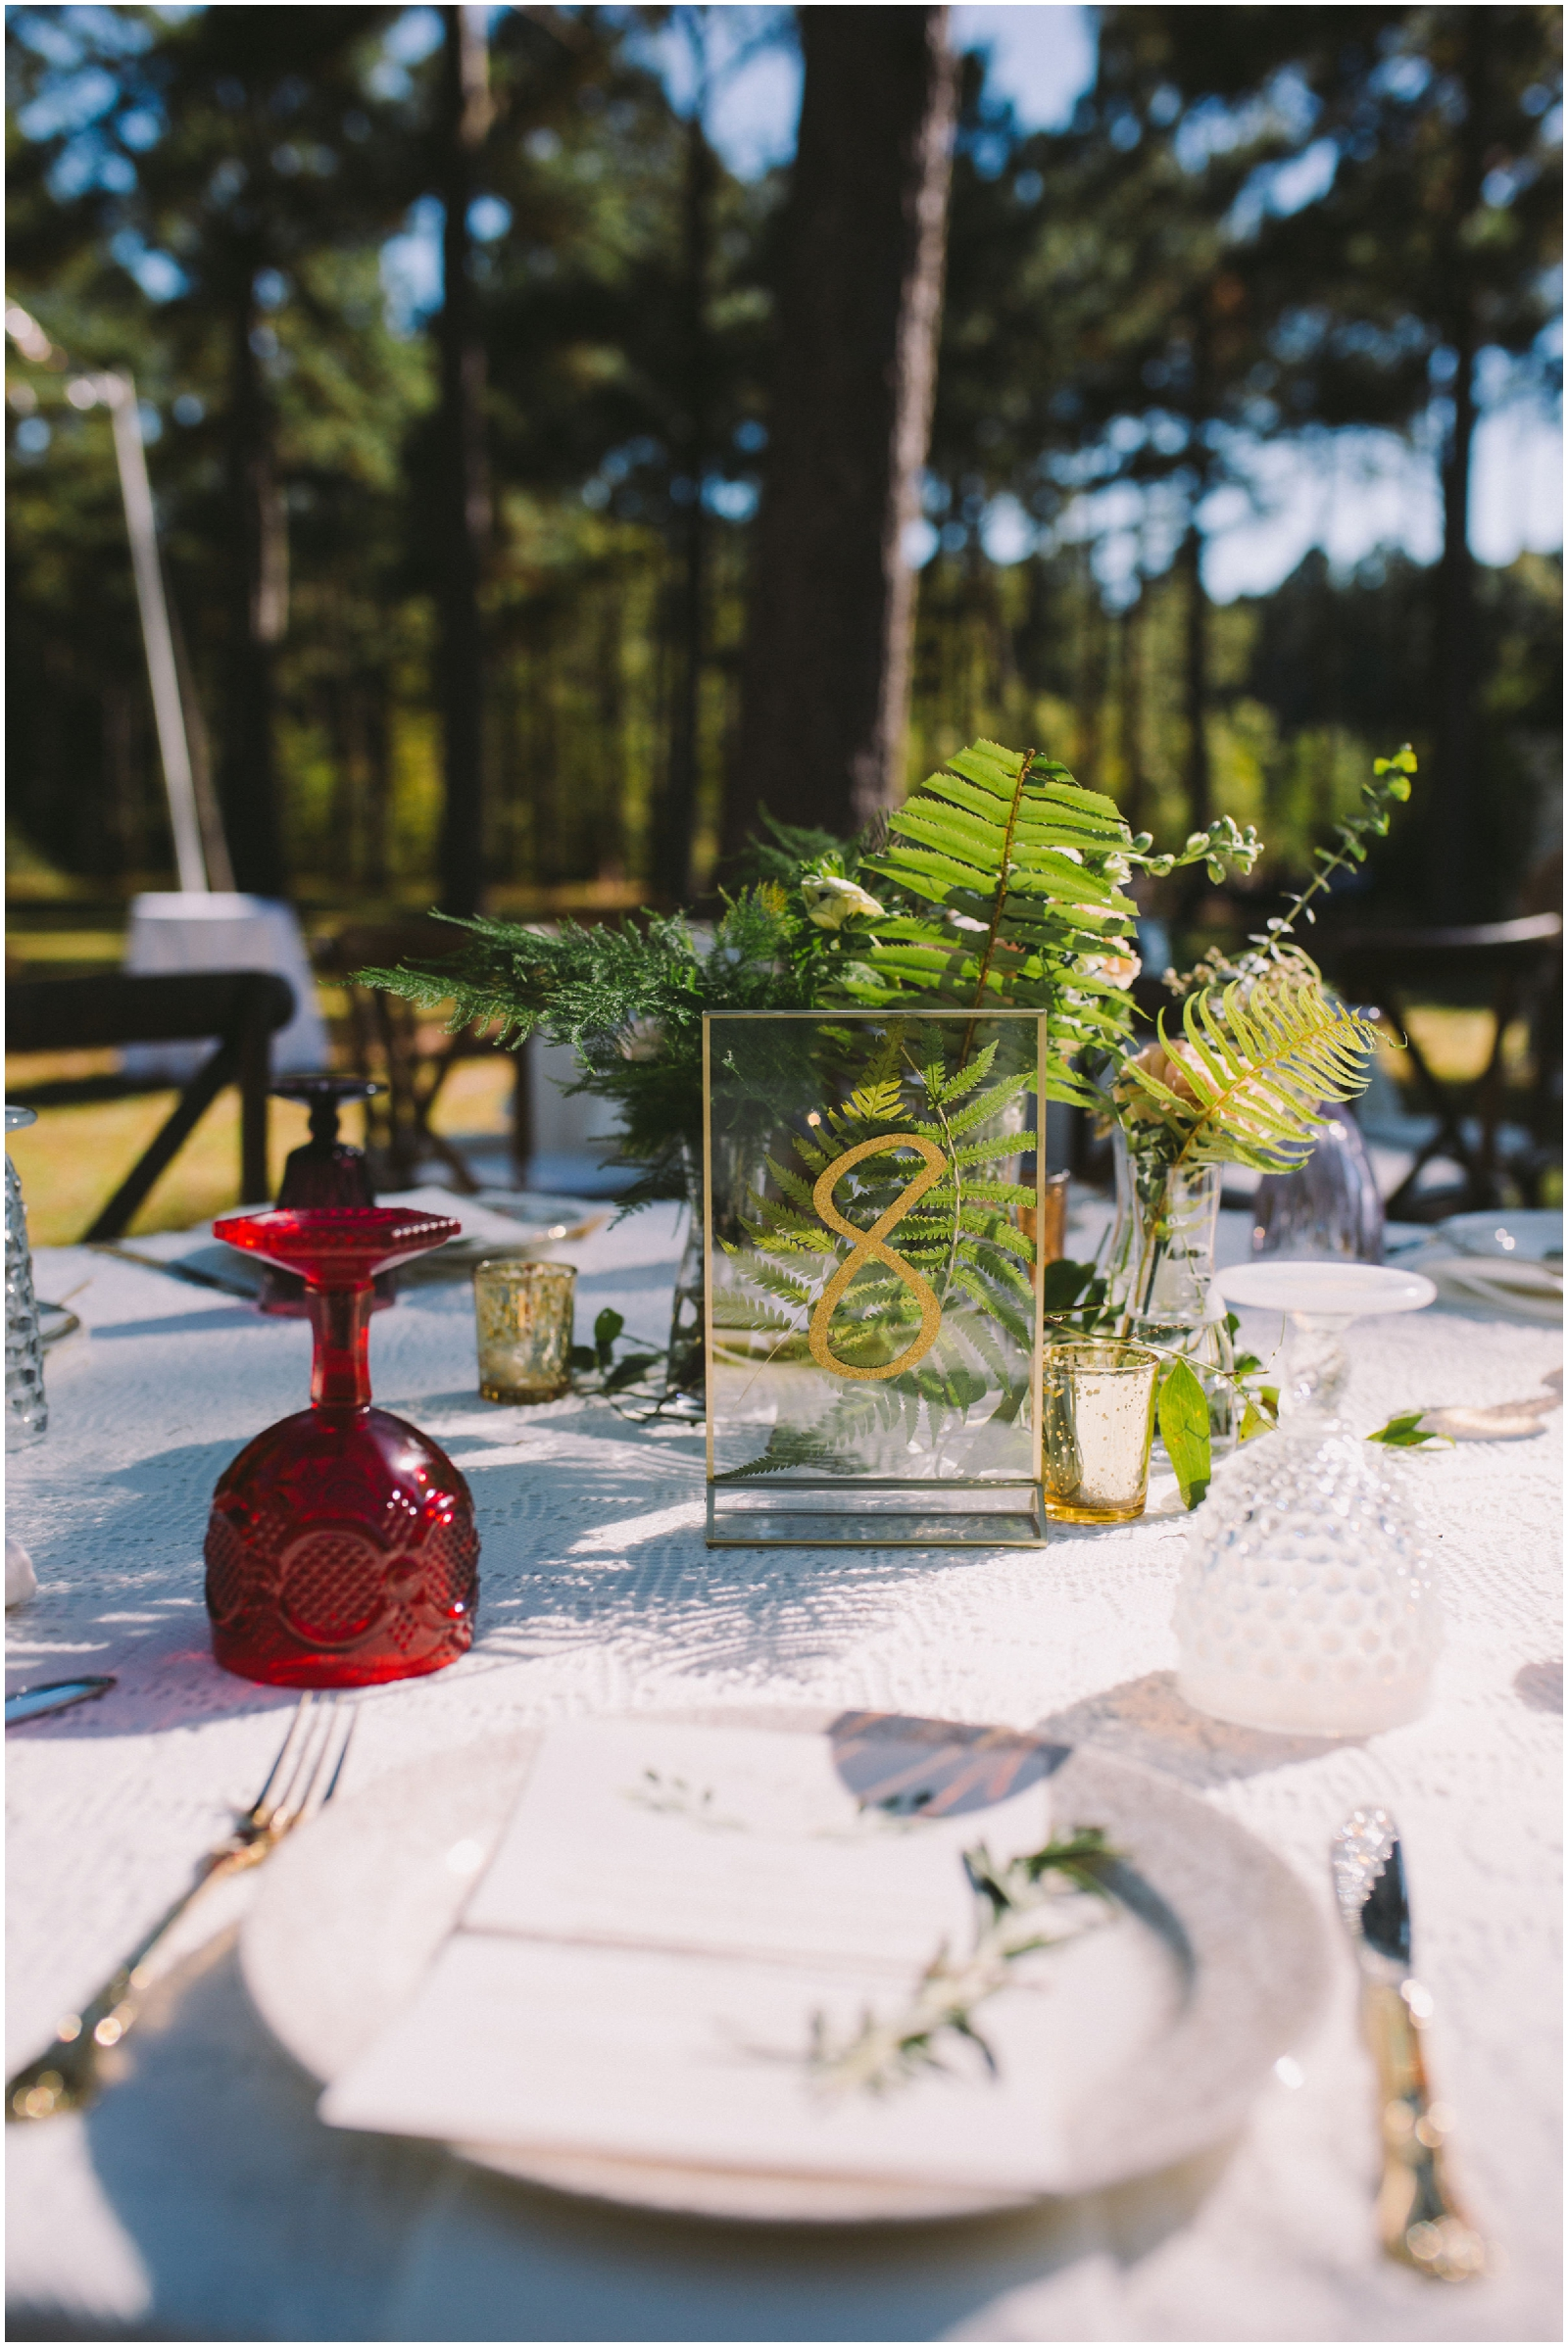 Wedding Table Set and Centerpiece Ideas